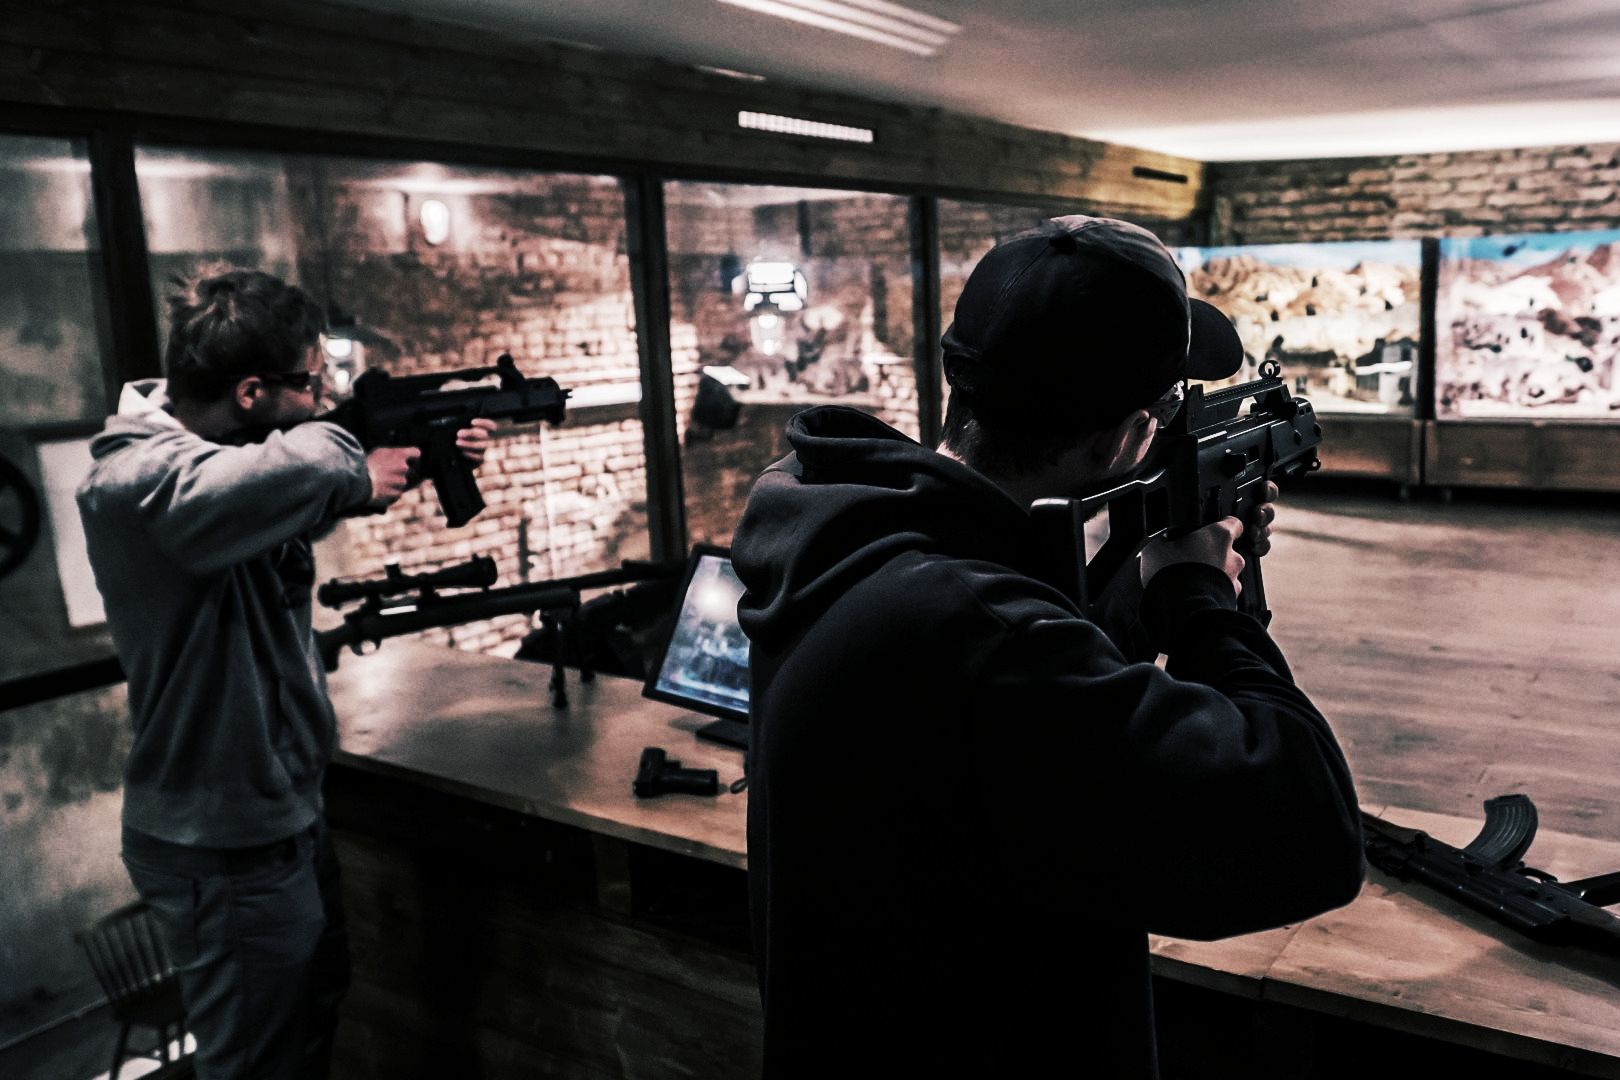 TEST YOURSELF - Our certified instructors will assist you on how to shoot safely and effectively in a simulated environment.Our unique and immersive systems will test your accuracy, speed, and judgement while running solo or among friends in realistic shooting scenarios.